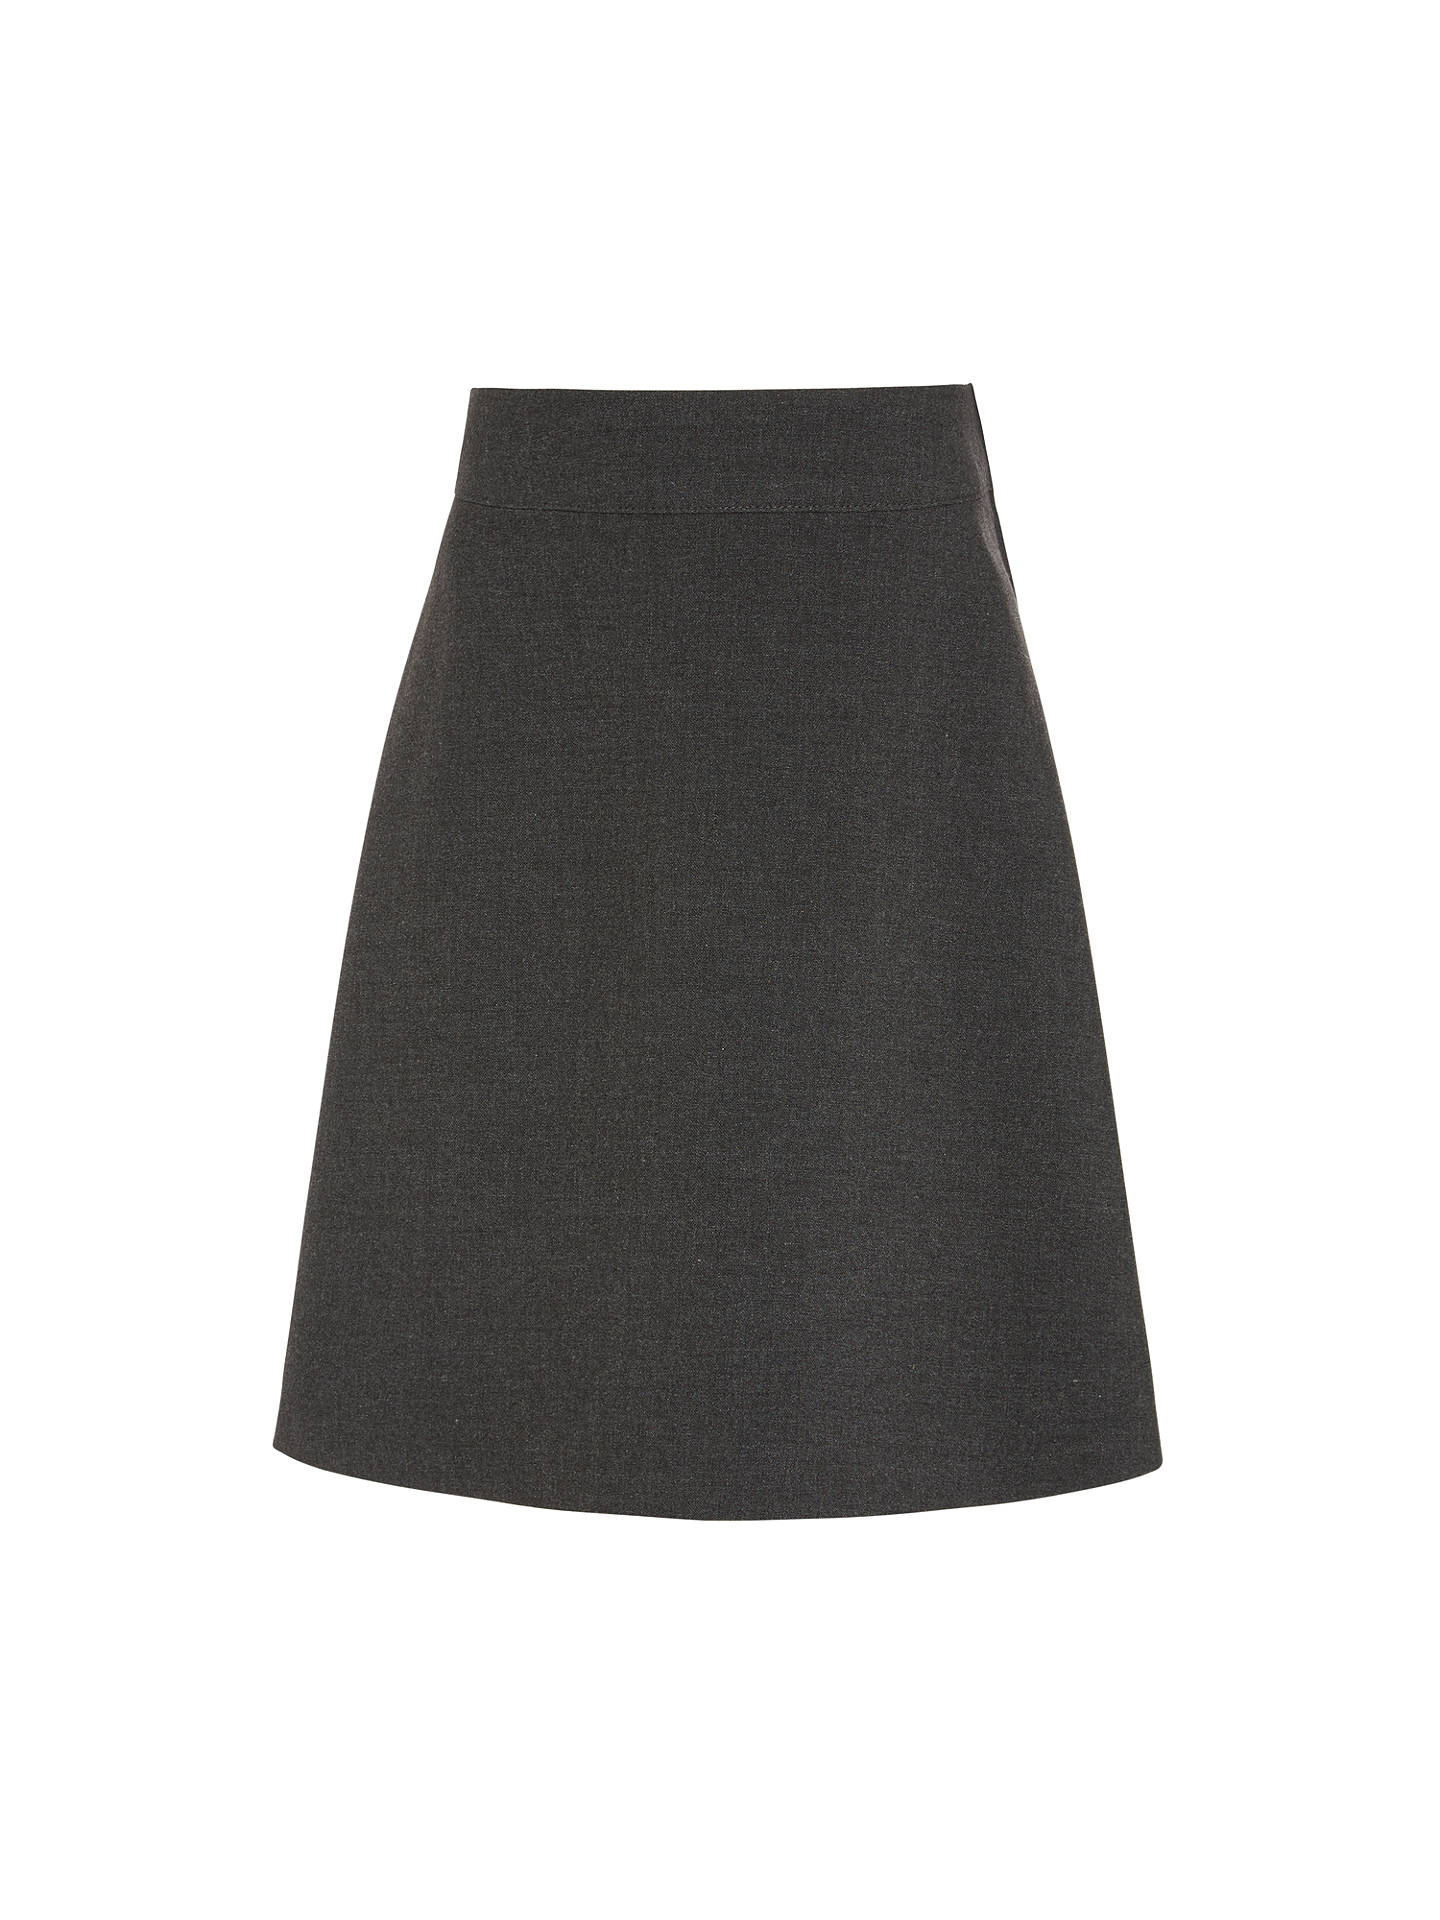 e8cc299ea5 Buy John Lewis & Partners Girls' Easy Care Adjustable Waist Skater School  Skirt, Grey ...